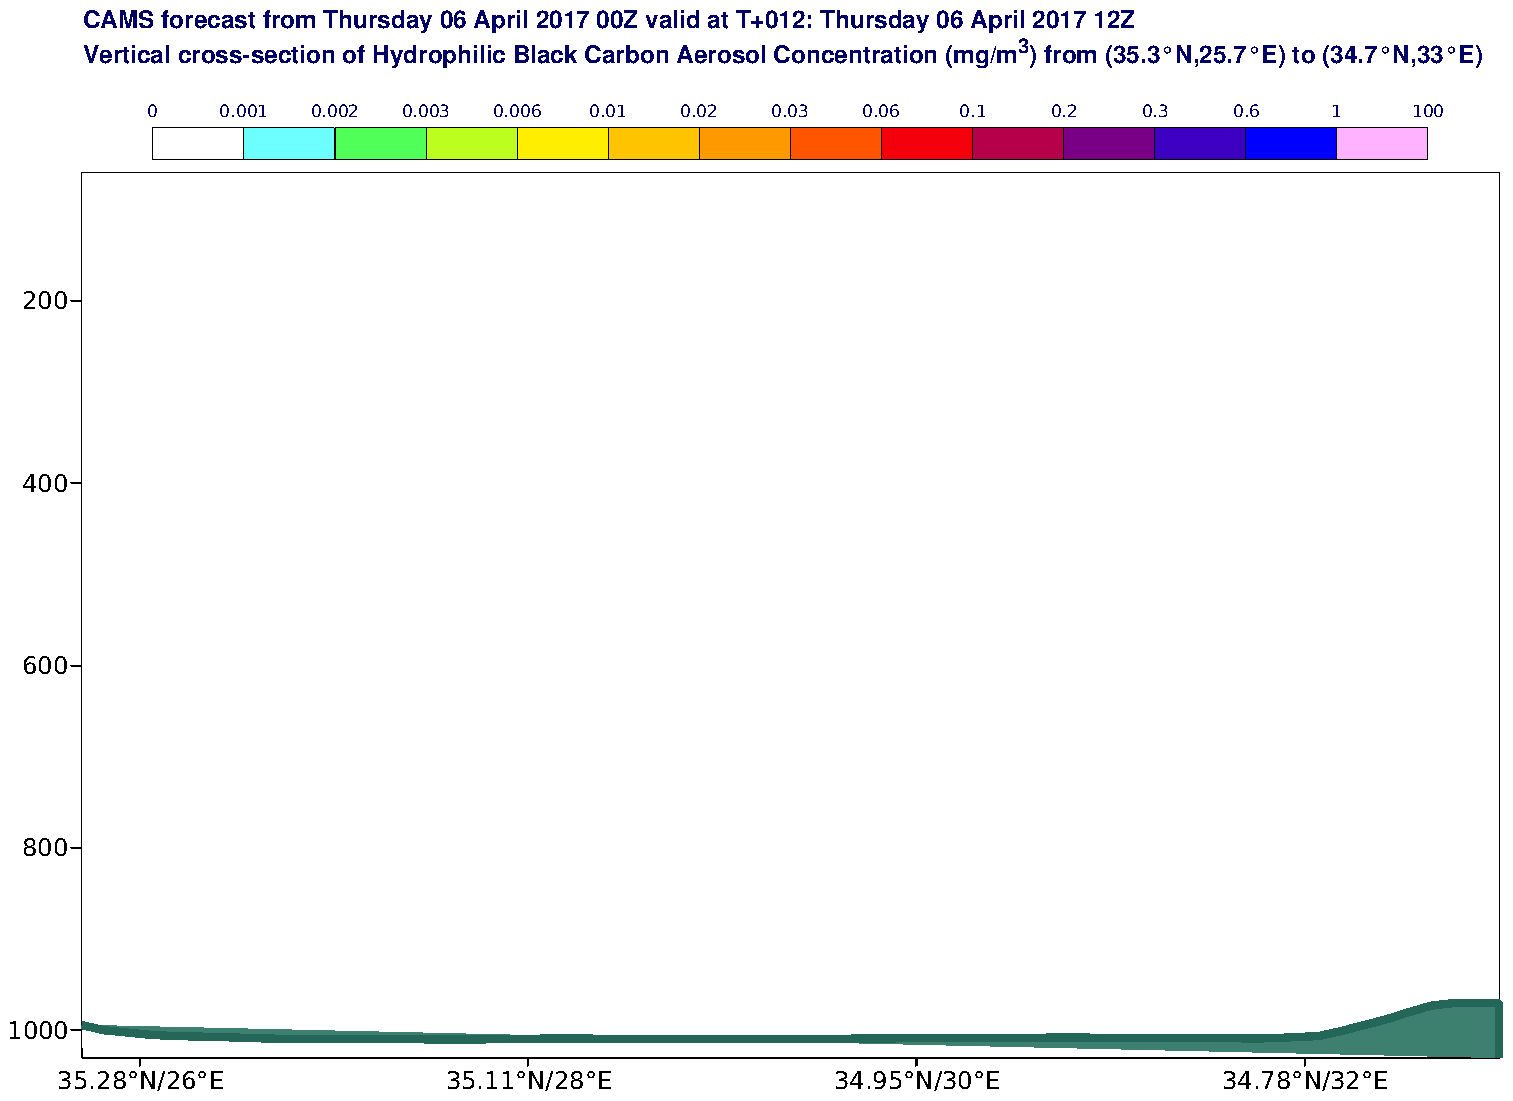 Vertical cross-section of Hydrophilic Black Carbon Aerosol Concentration (mg/m3) valid at T12 - 2017-04-06 12:00